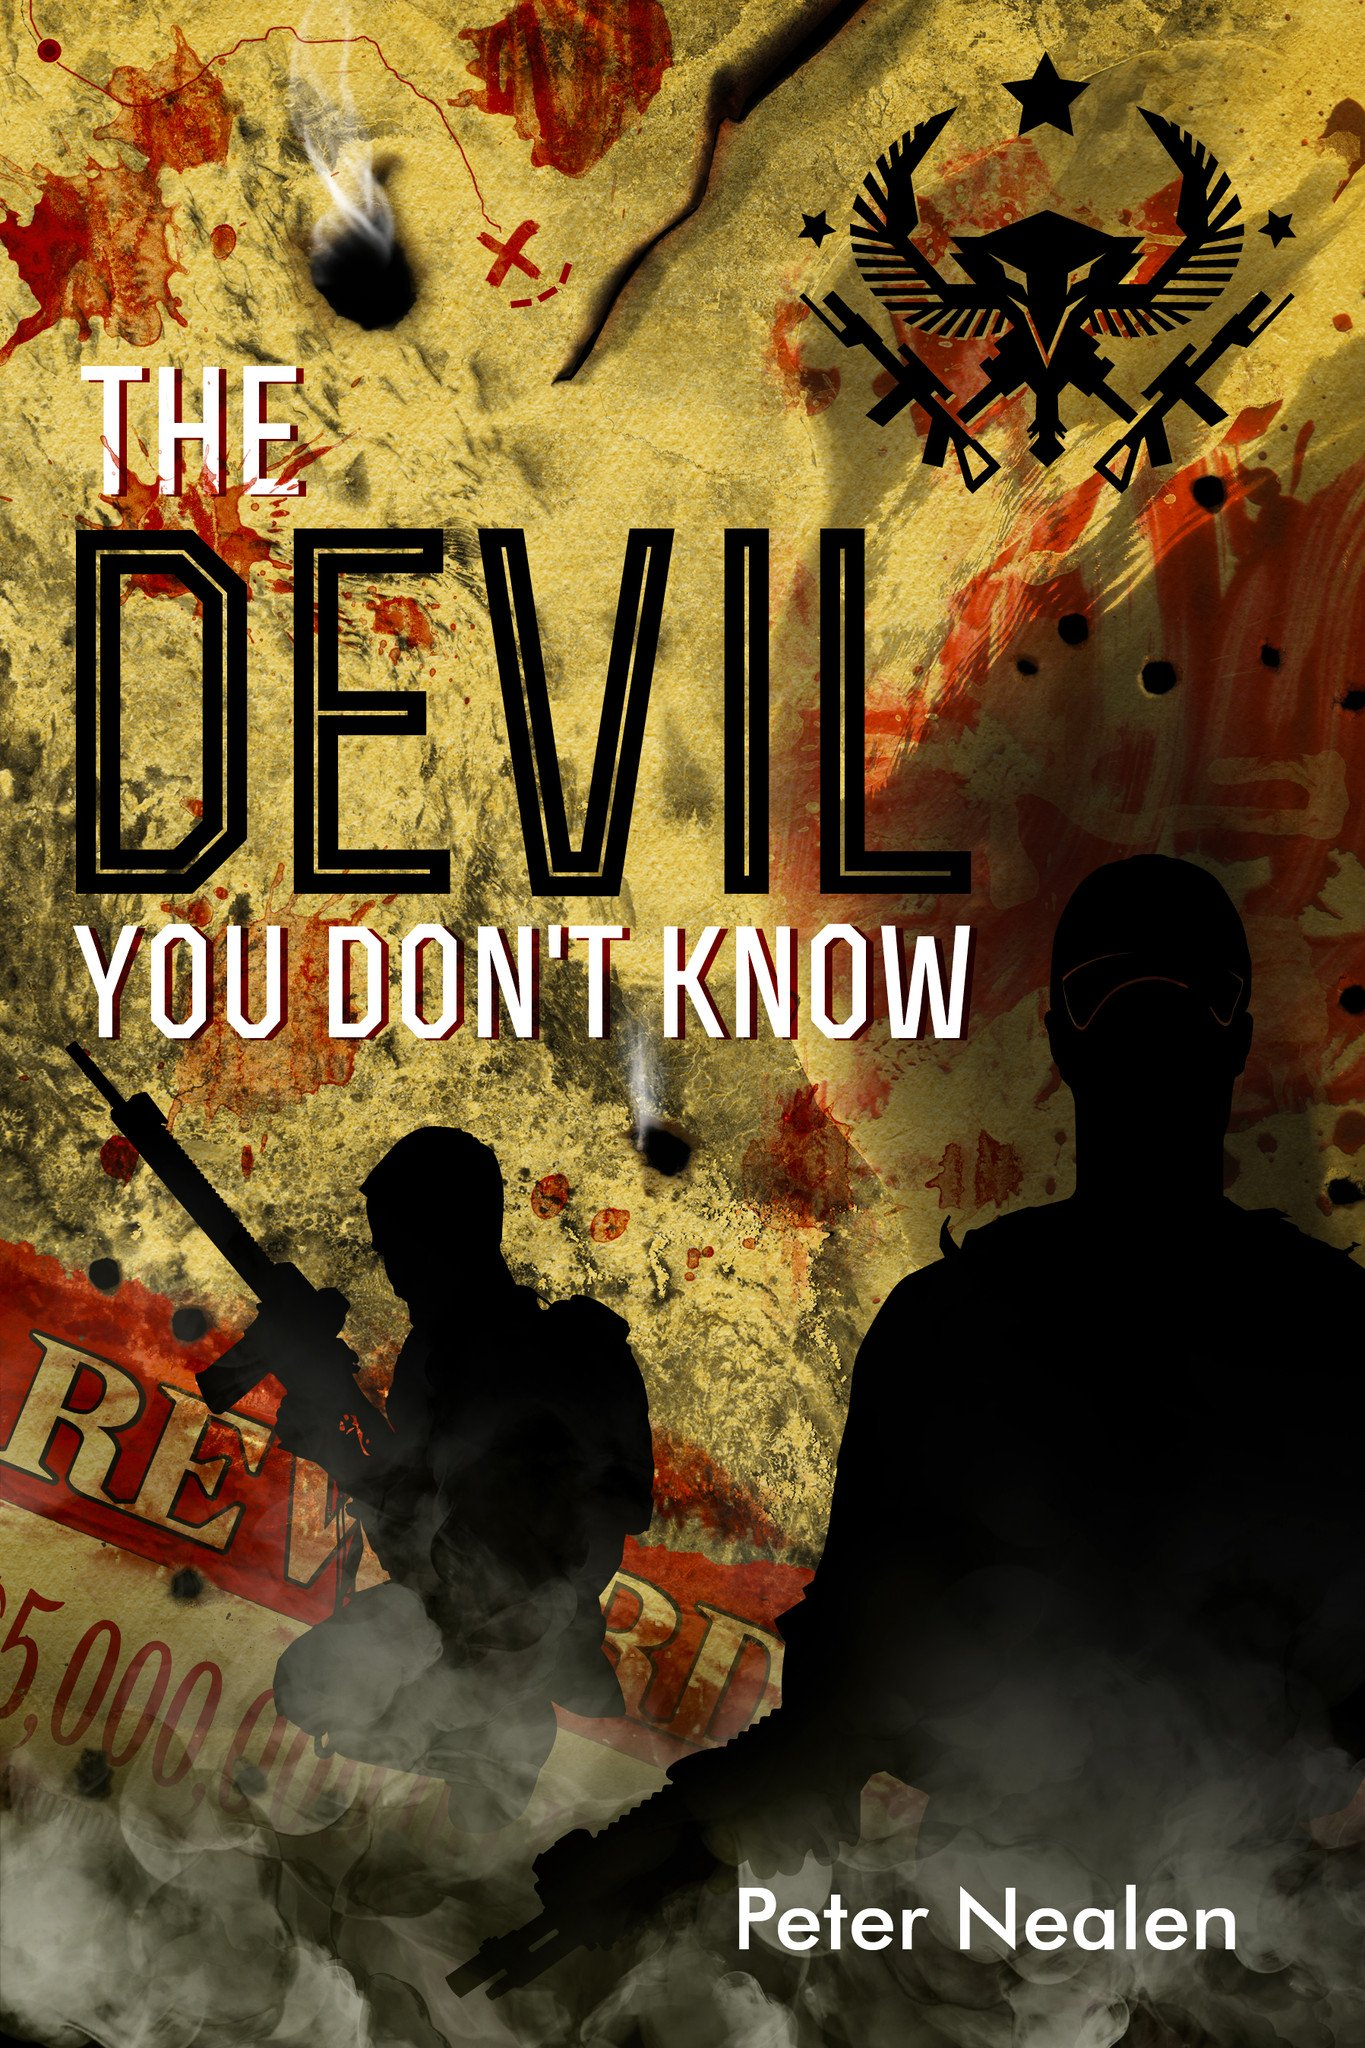 The Devil You Don't Know by Peter Nealen